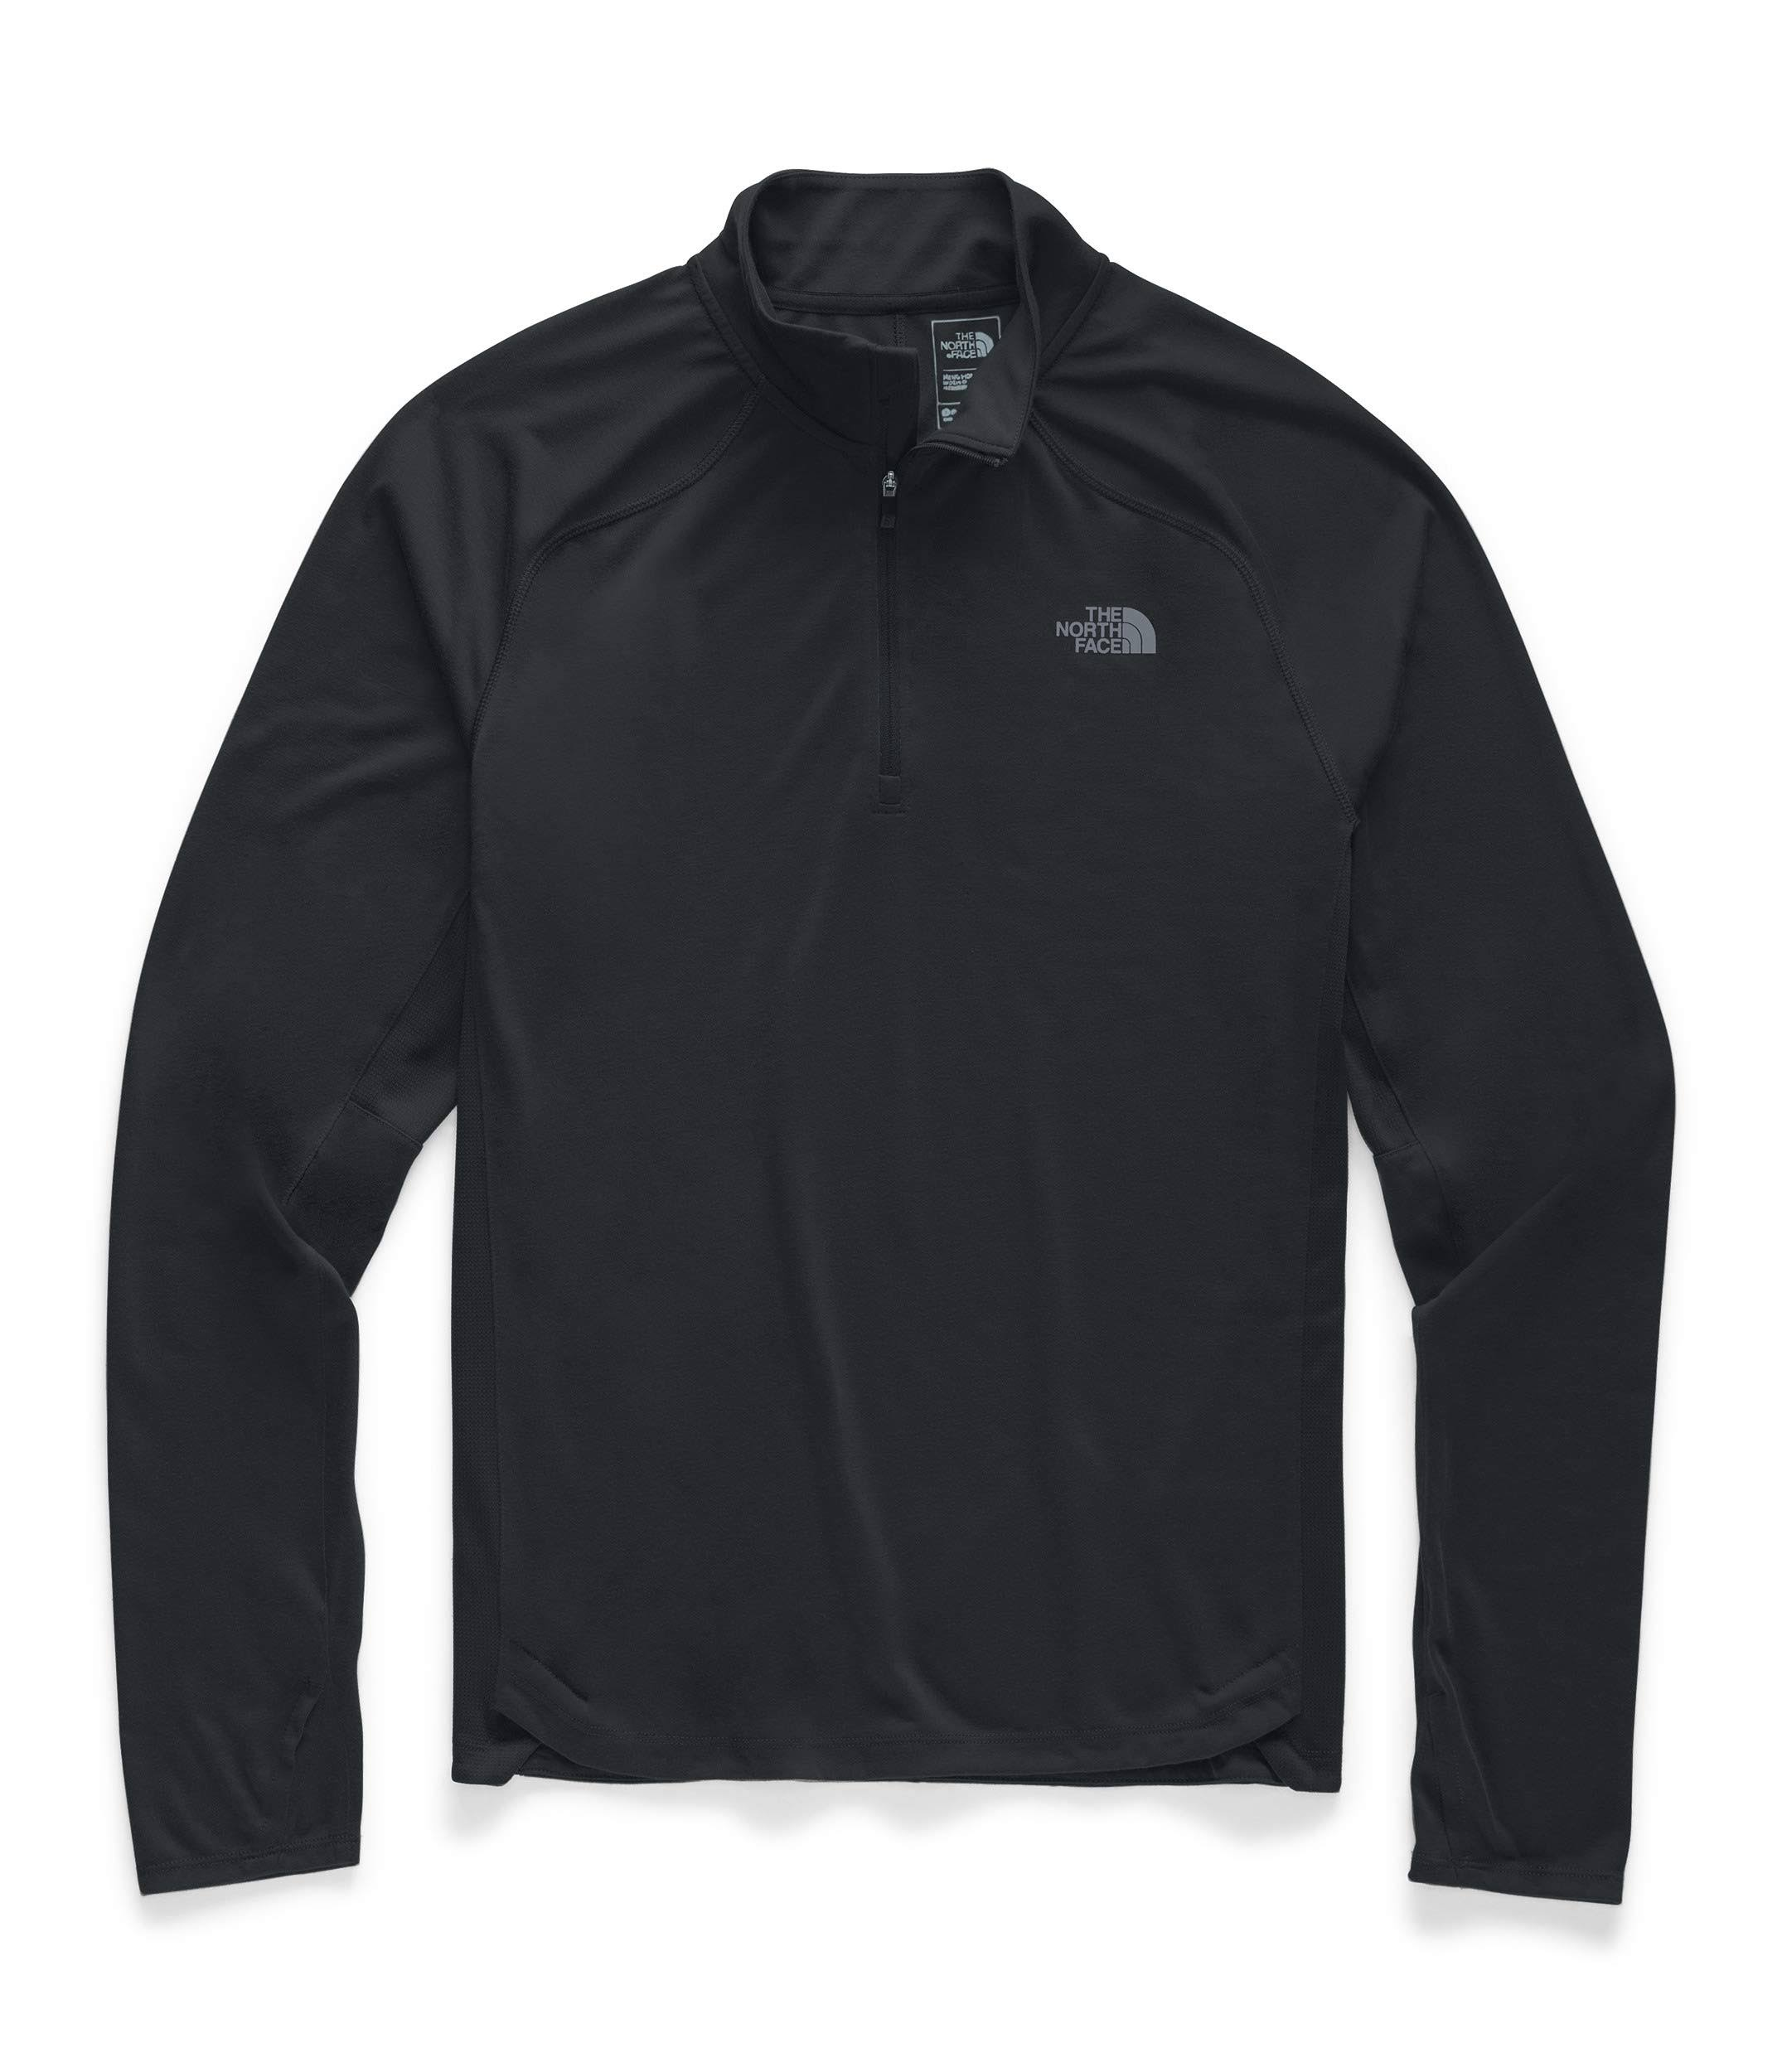 The North Face Men's Essential 1/4 Zip TNF Black / M